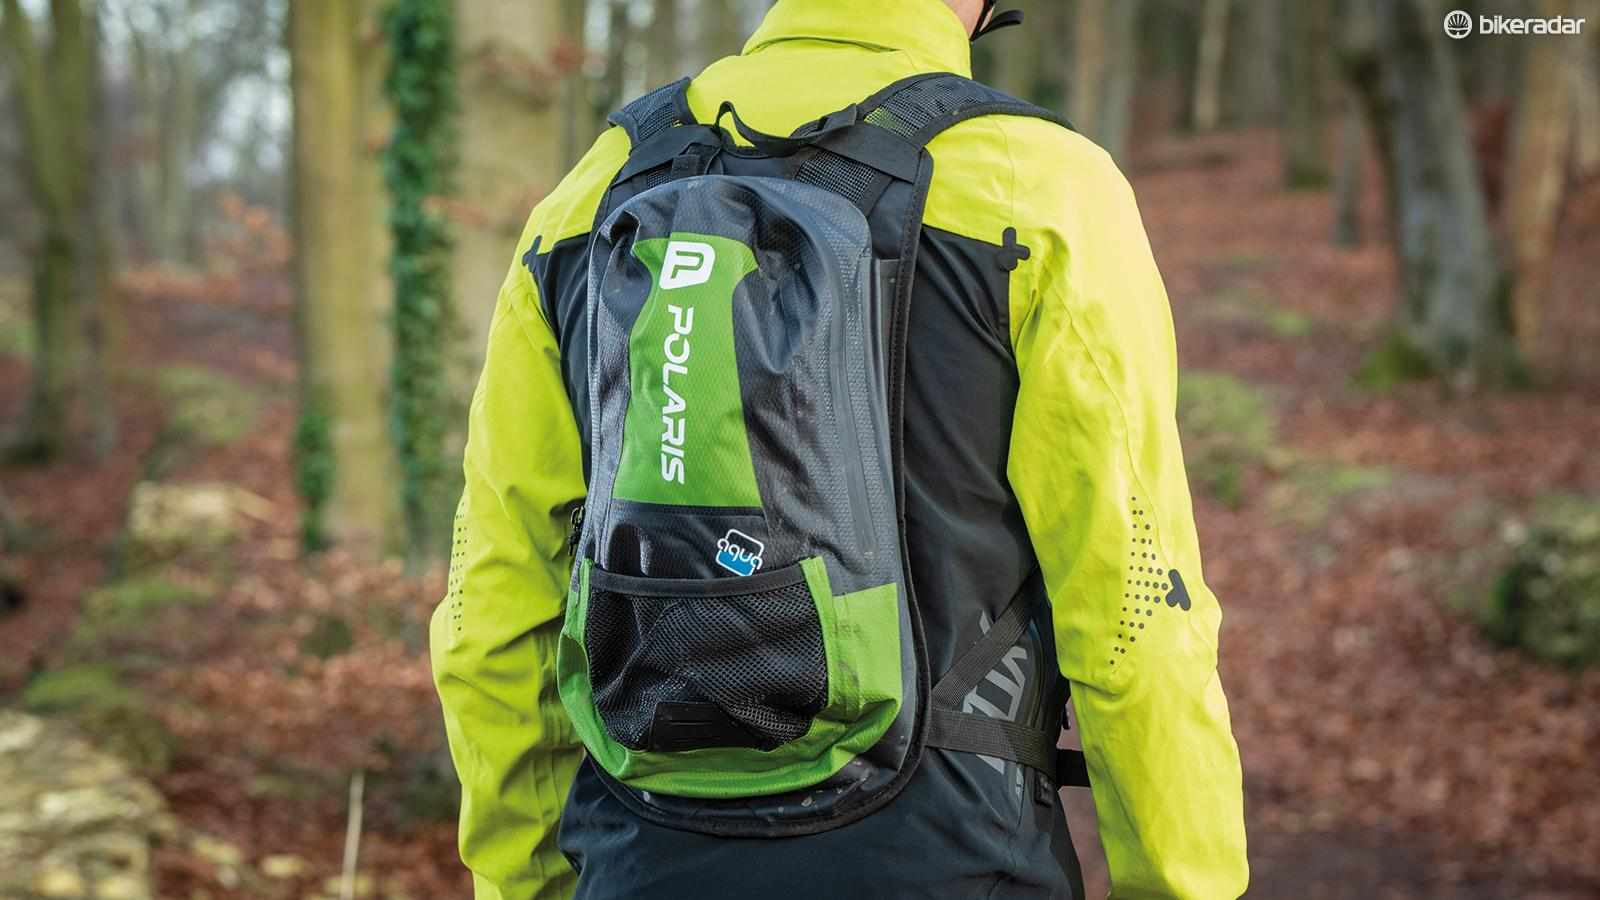 A lightweight waterproof pack that has plenty of room for all the essentials